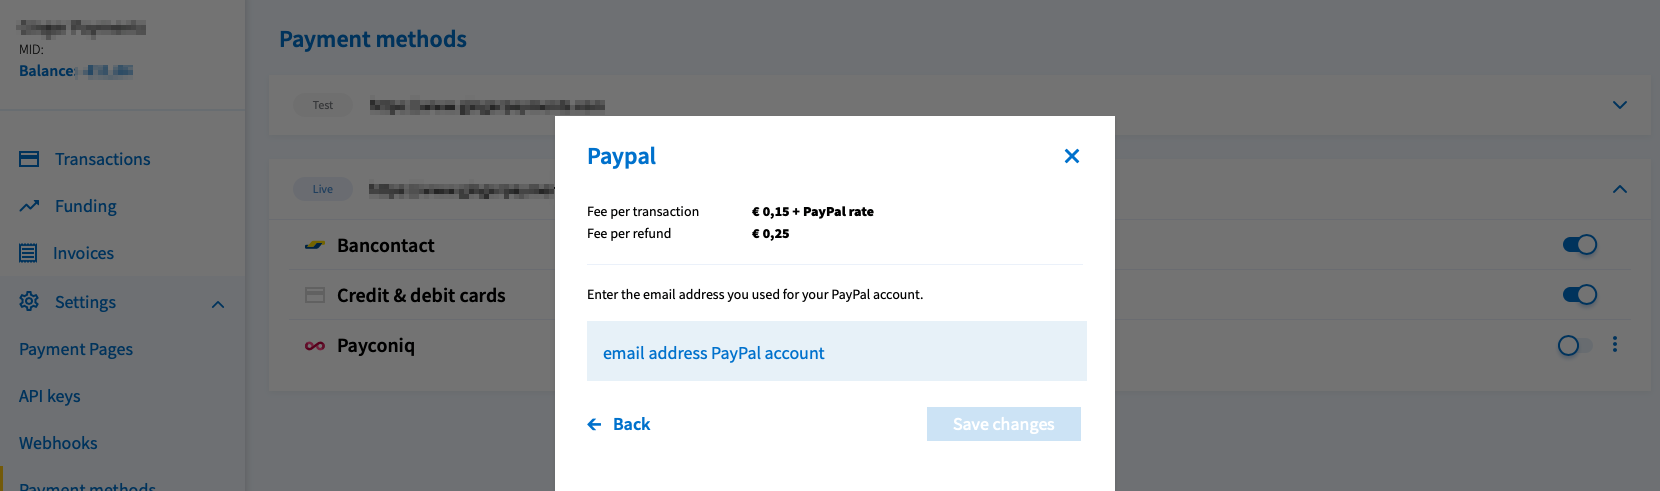 Change email address PayPal